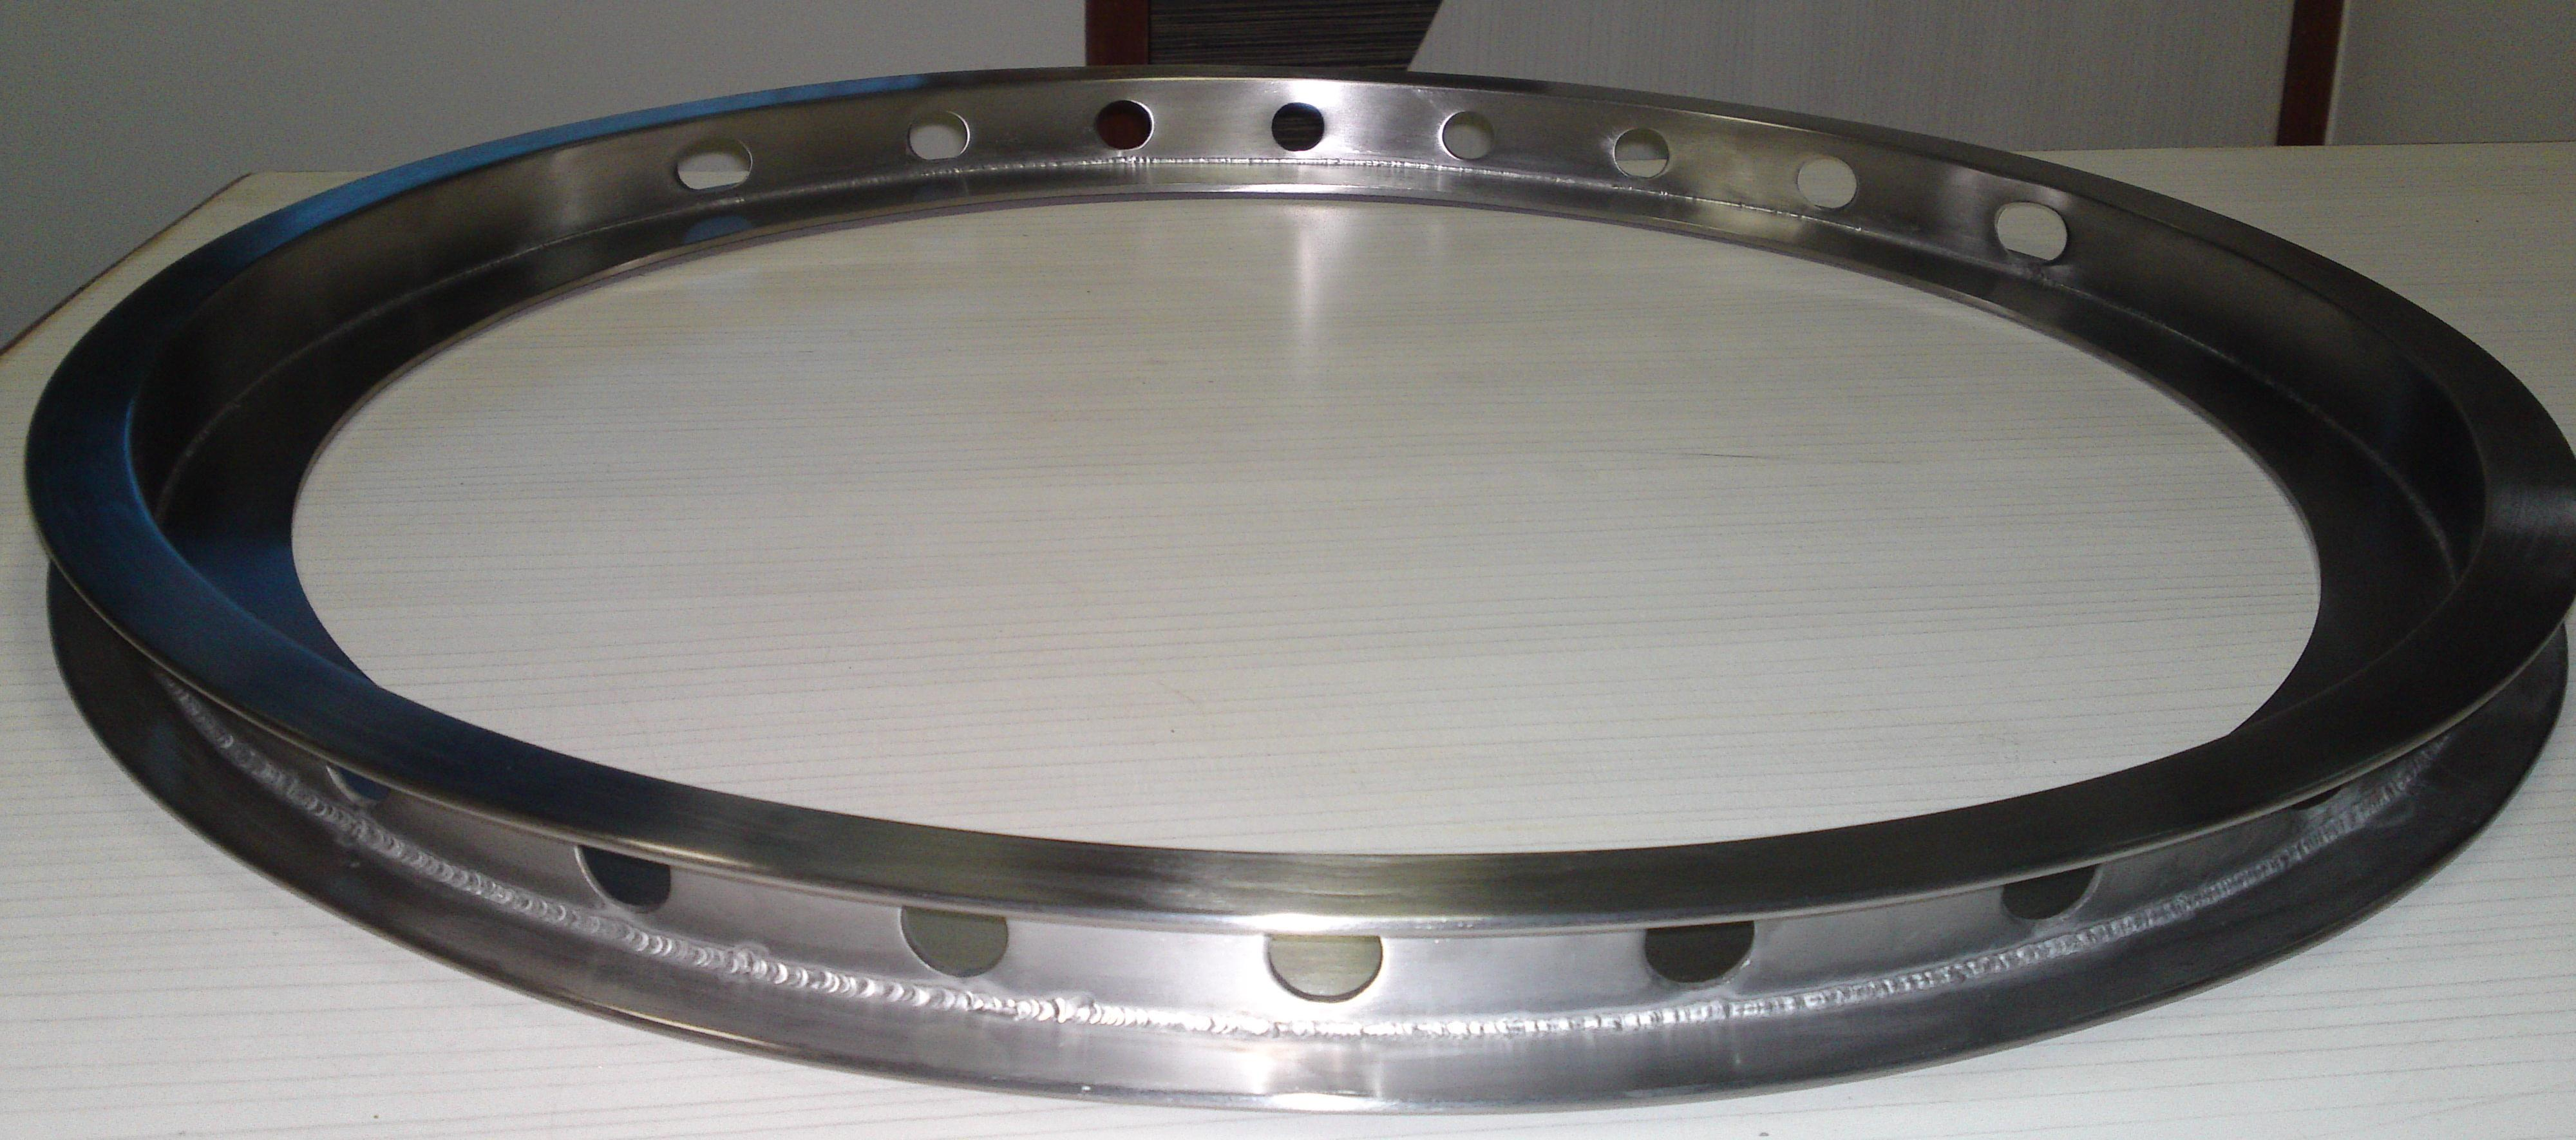 Sieve Magnet Grill